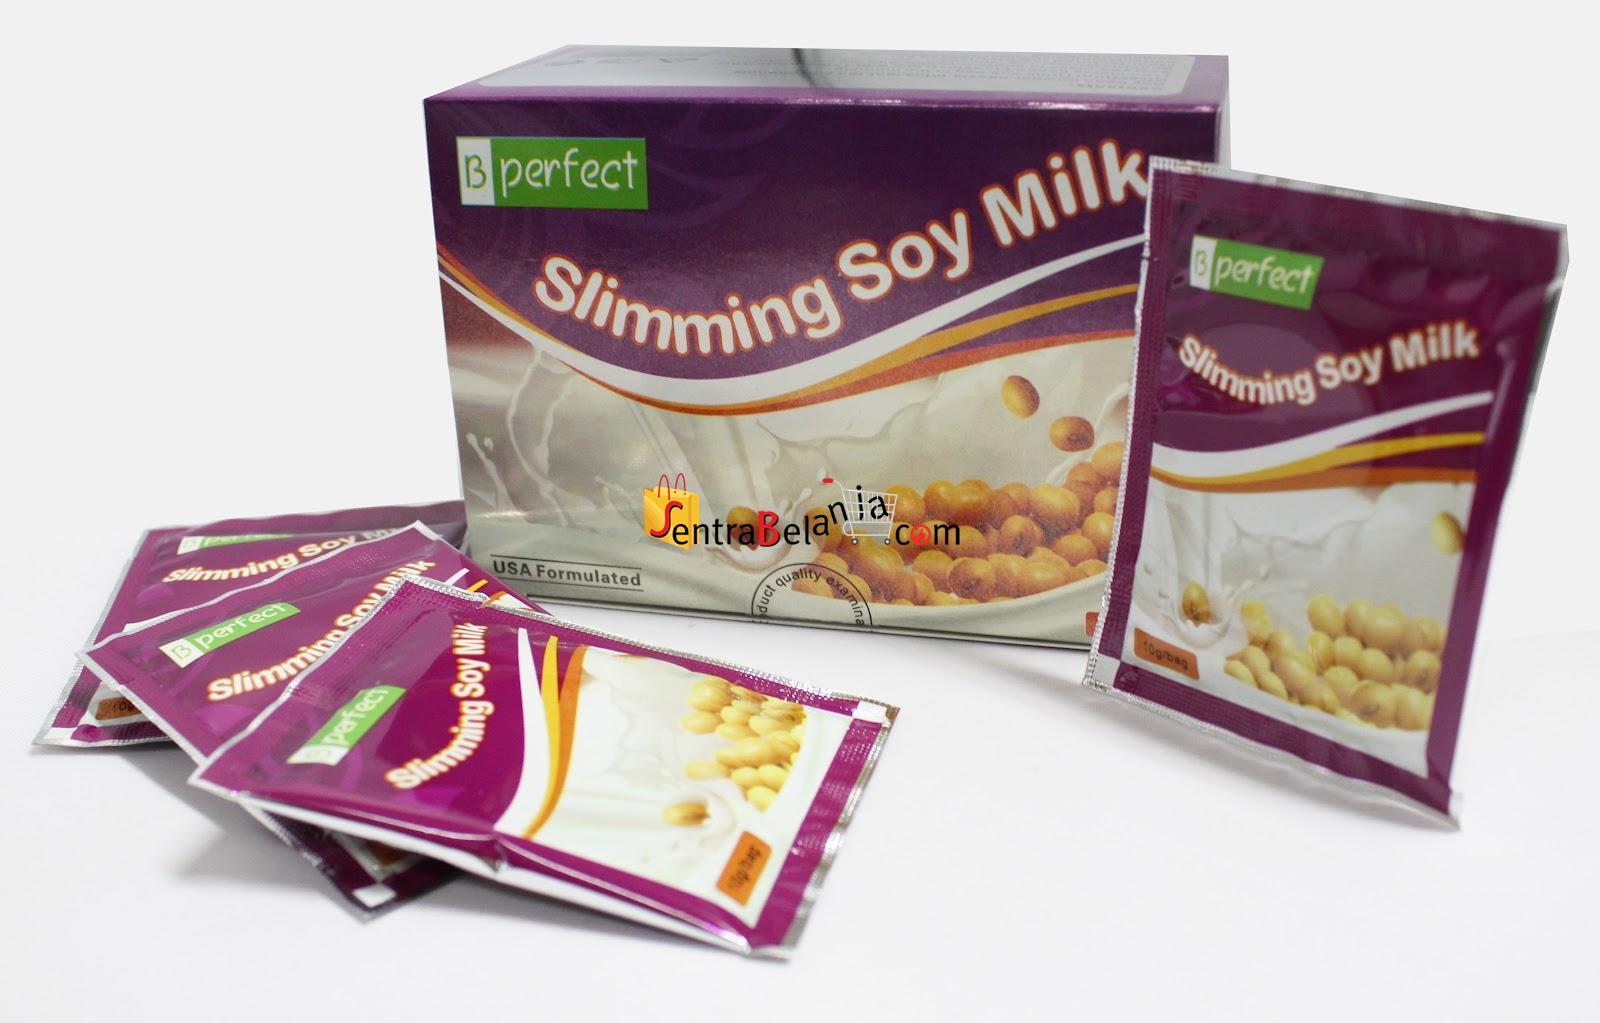 B-Perfect Soy Milk Series